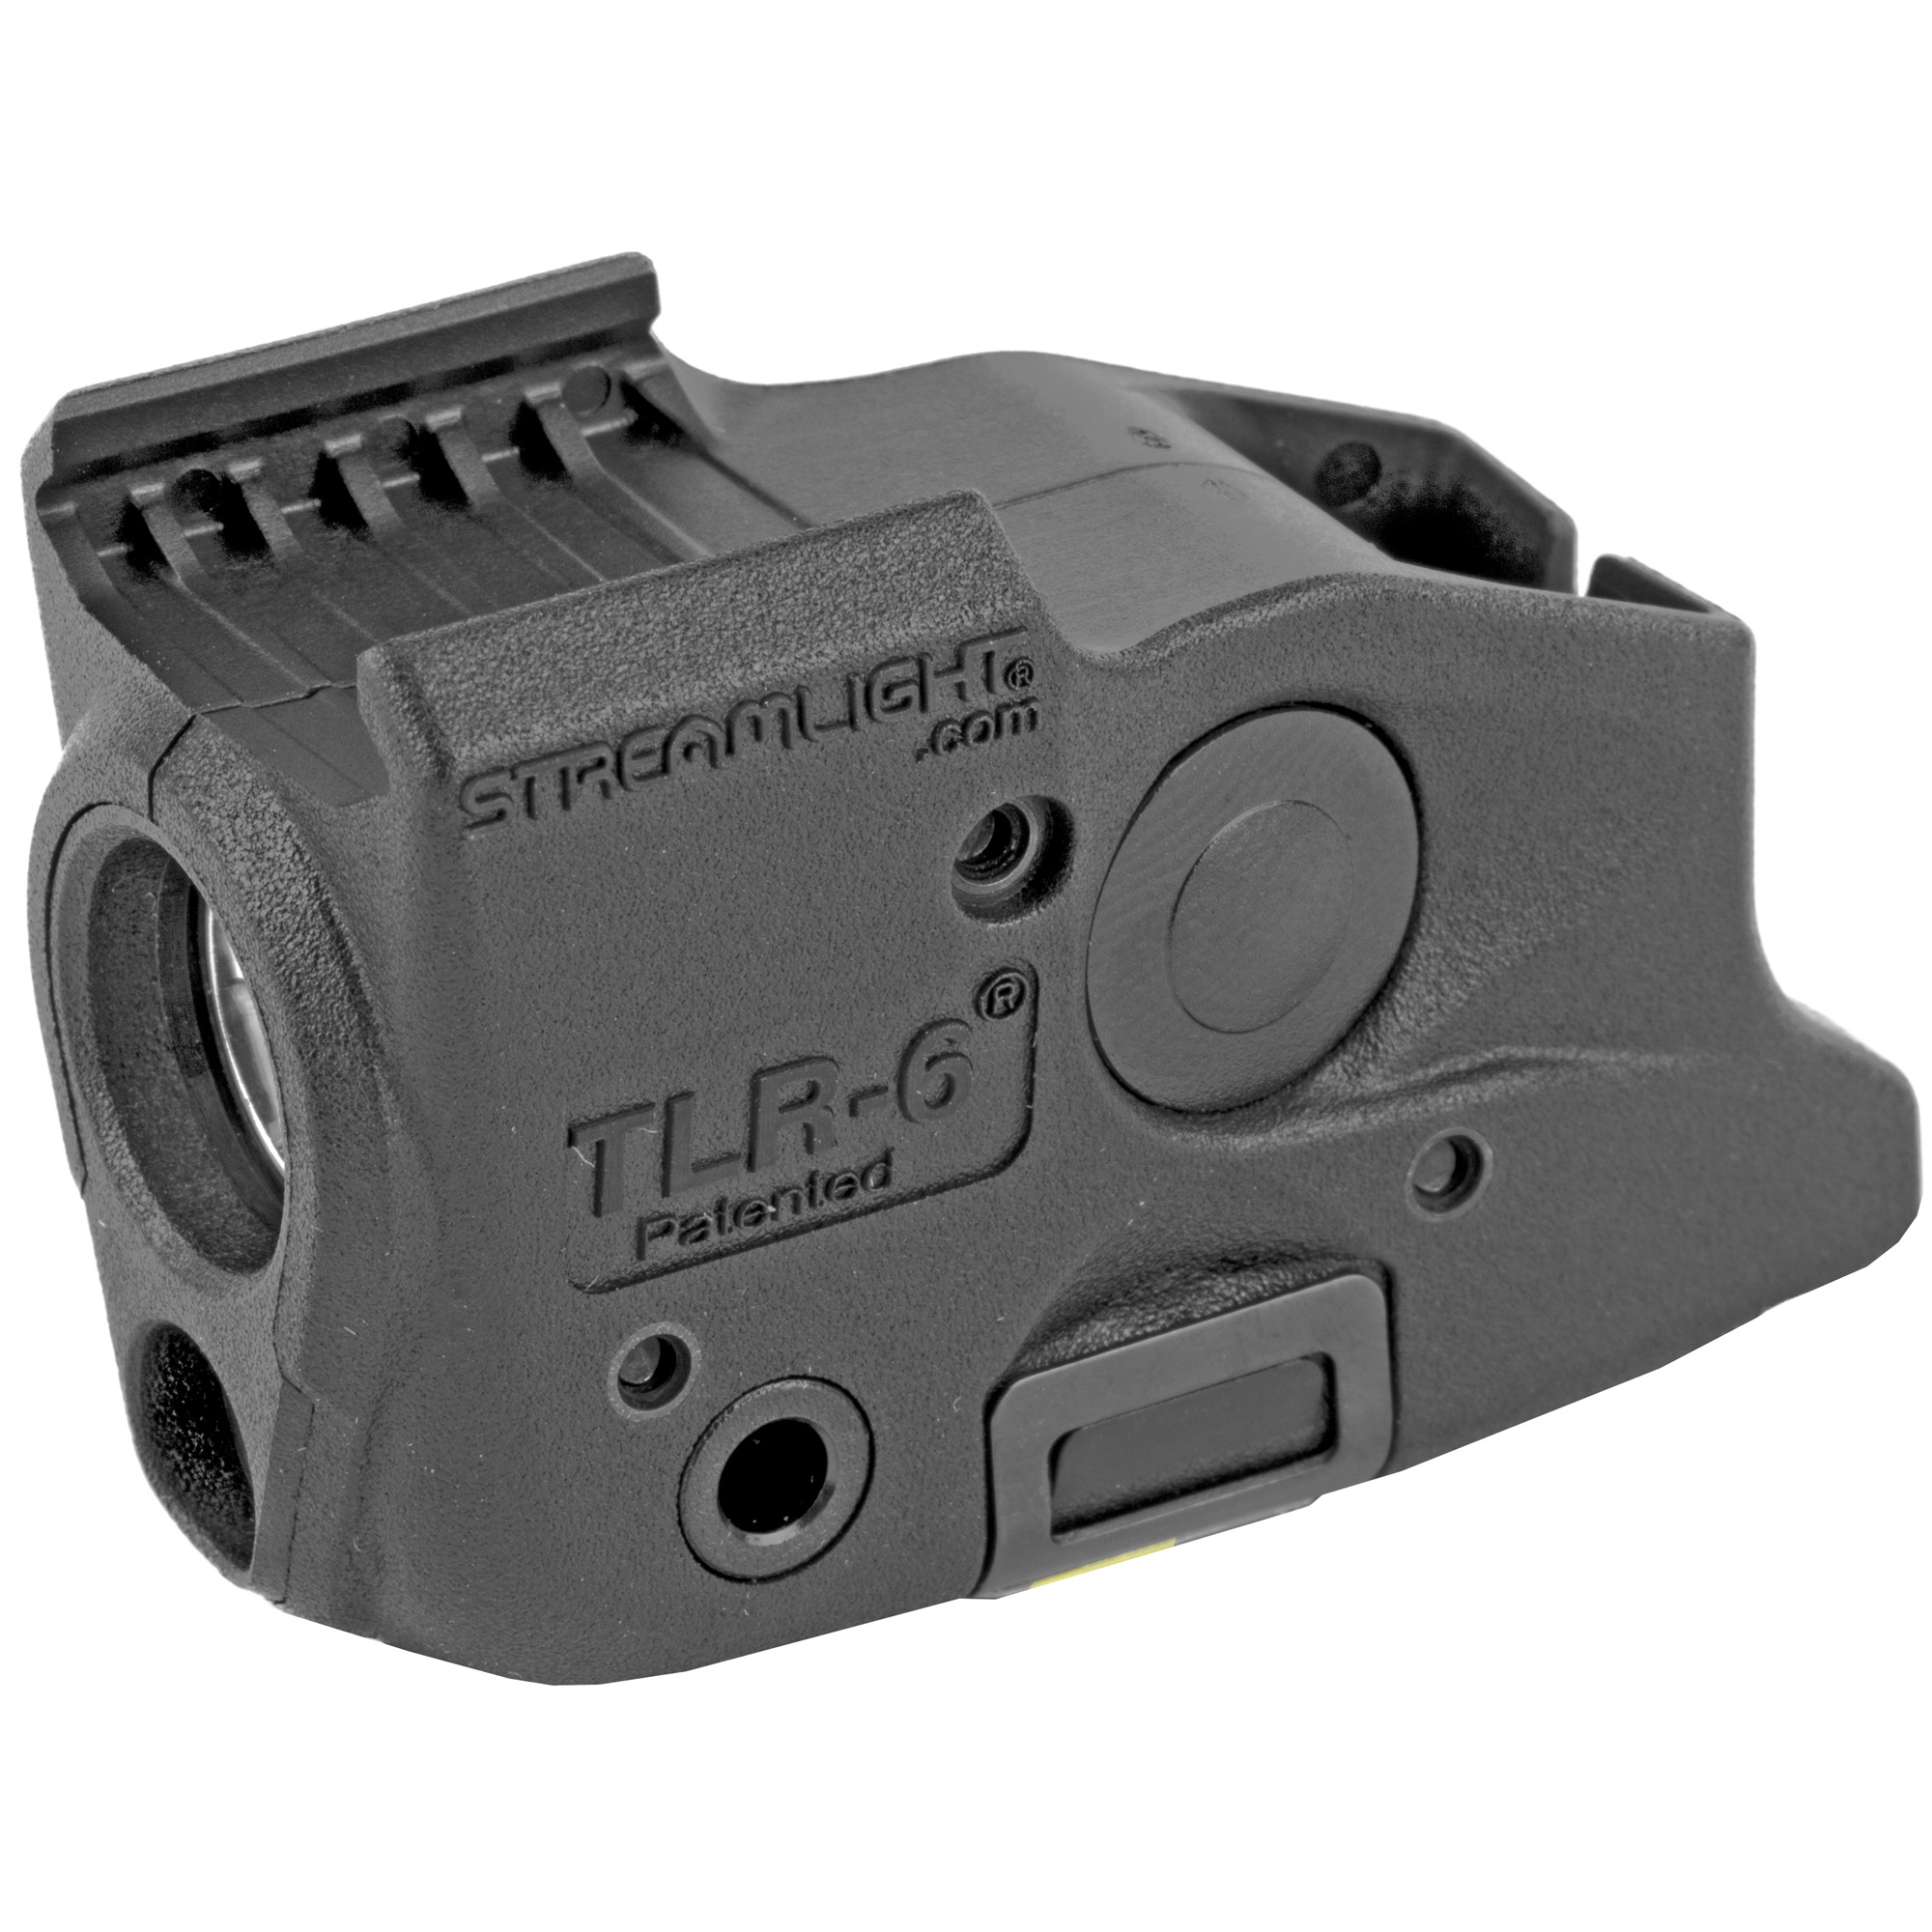 Designed to securely attach to both the rail and trigger guard of standard and compact railed handguns. Using this low-profile weapon light with laser allows for easier identification of potential threats before taking action.